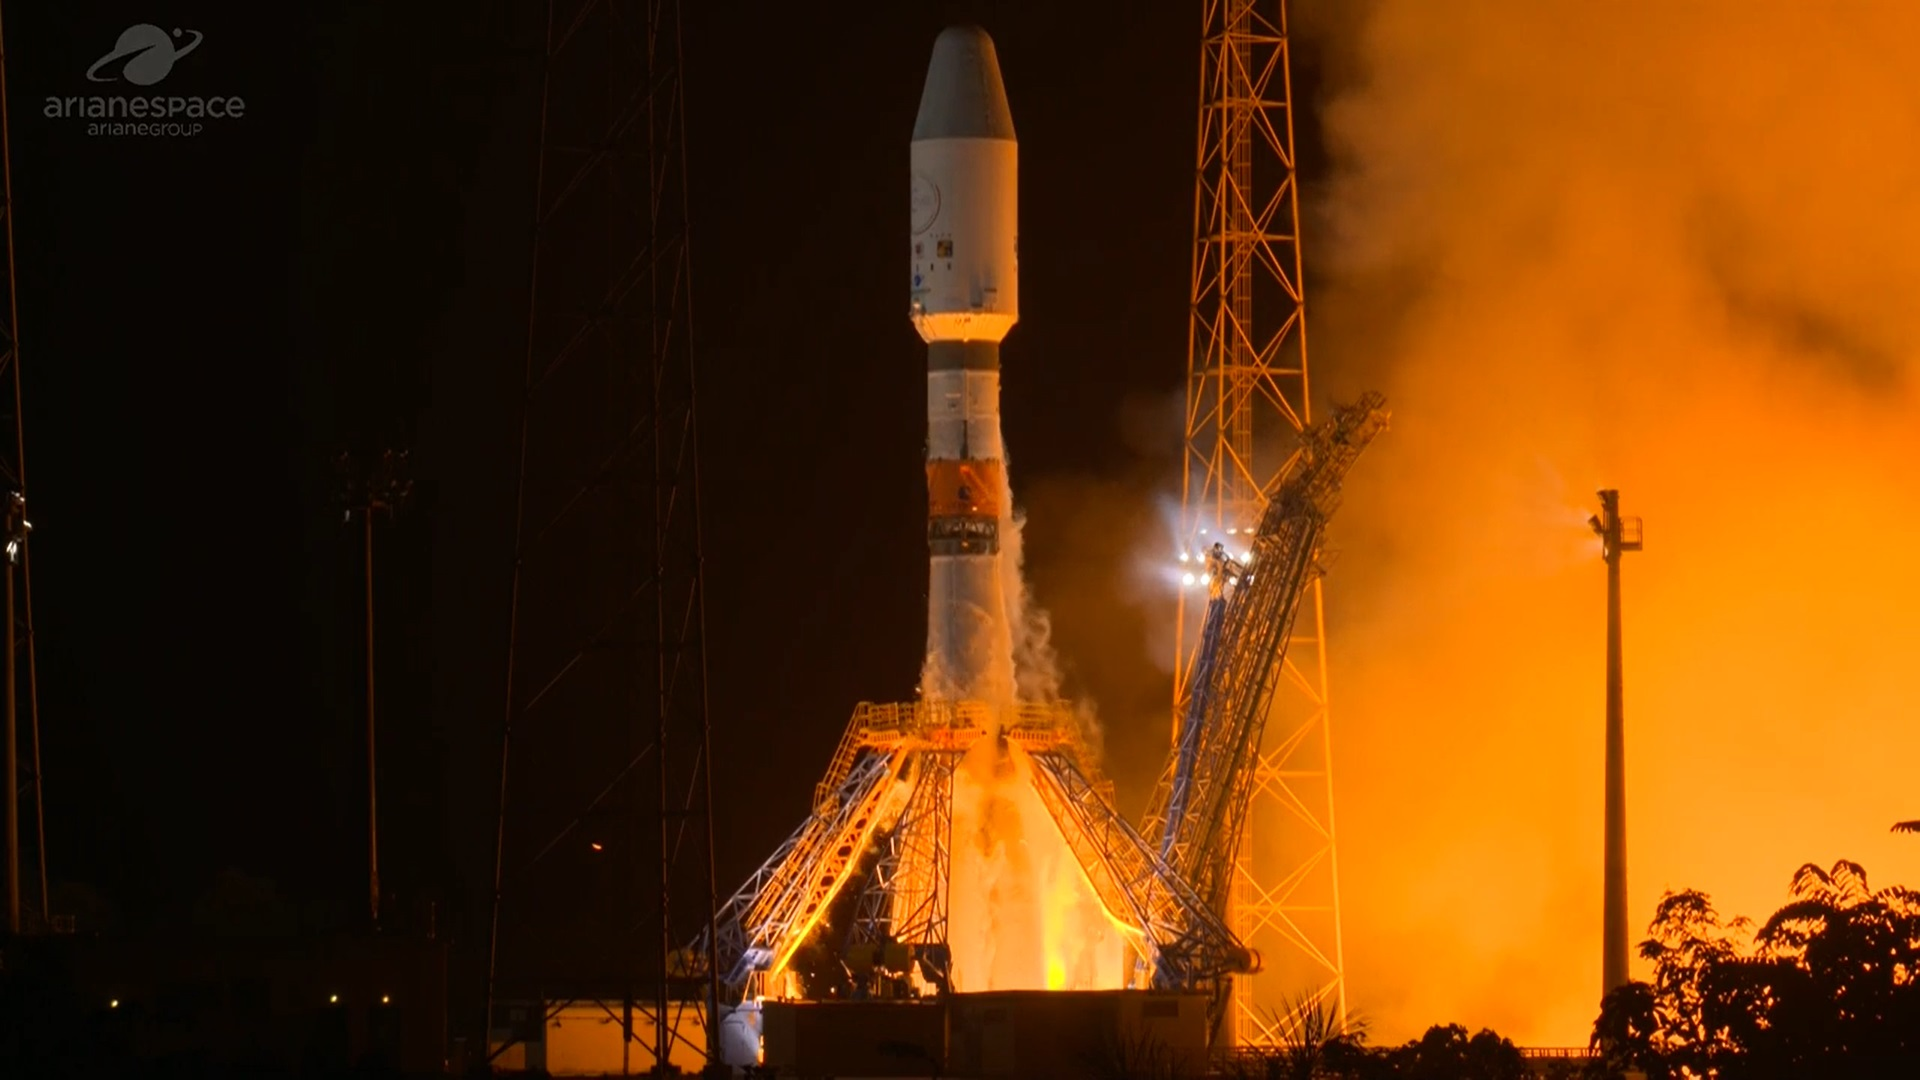 ESA launches Cheops satellite to examine distant exoplanets